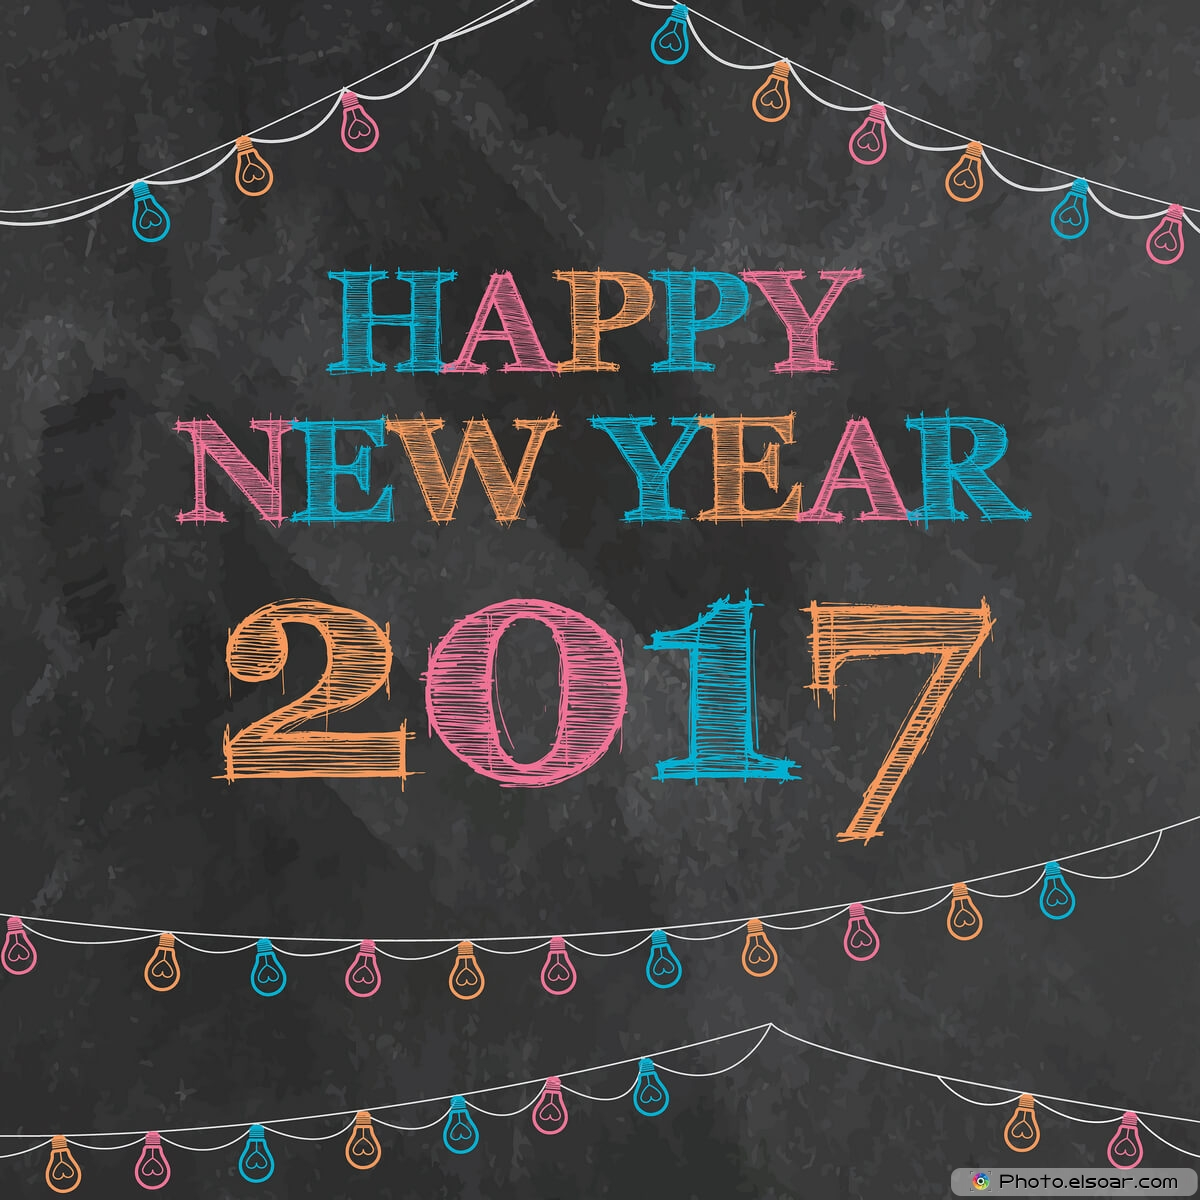 2017 Free Images,Wishes Image,New Year 2017,Happy New Year